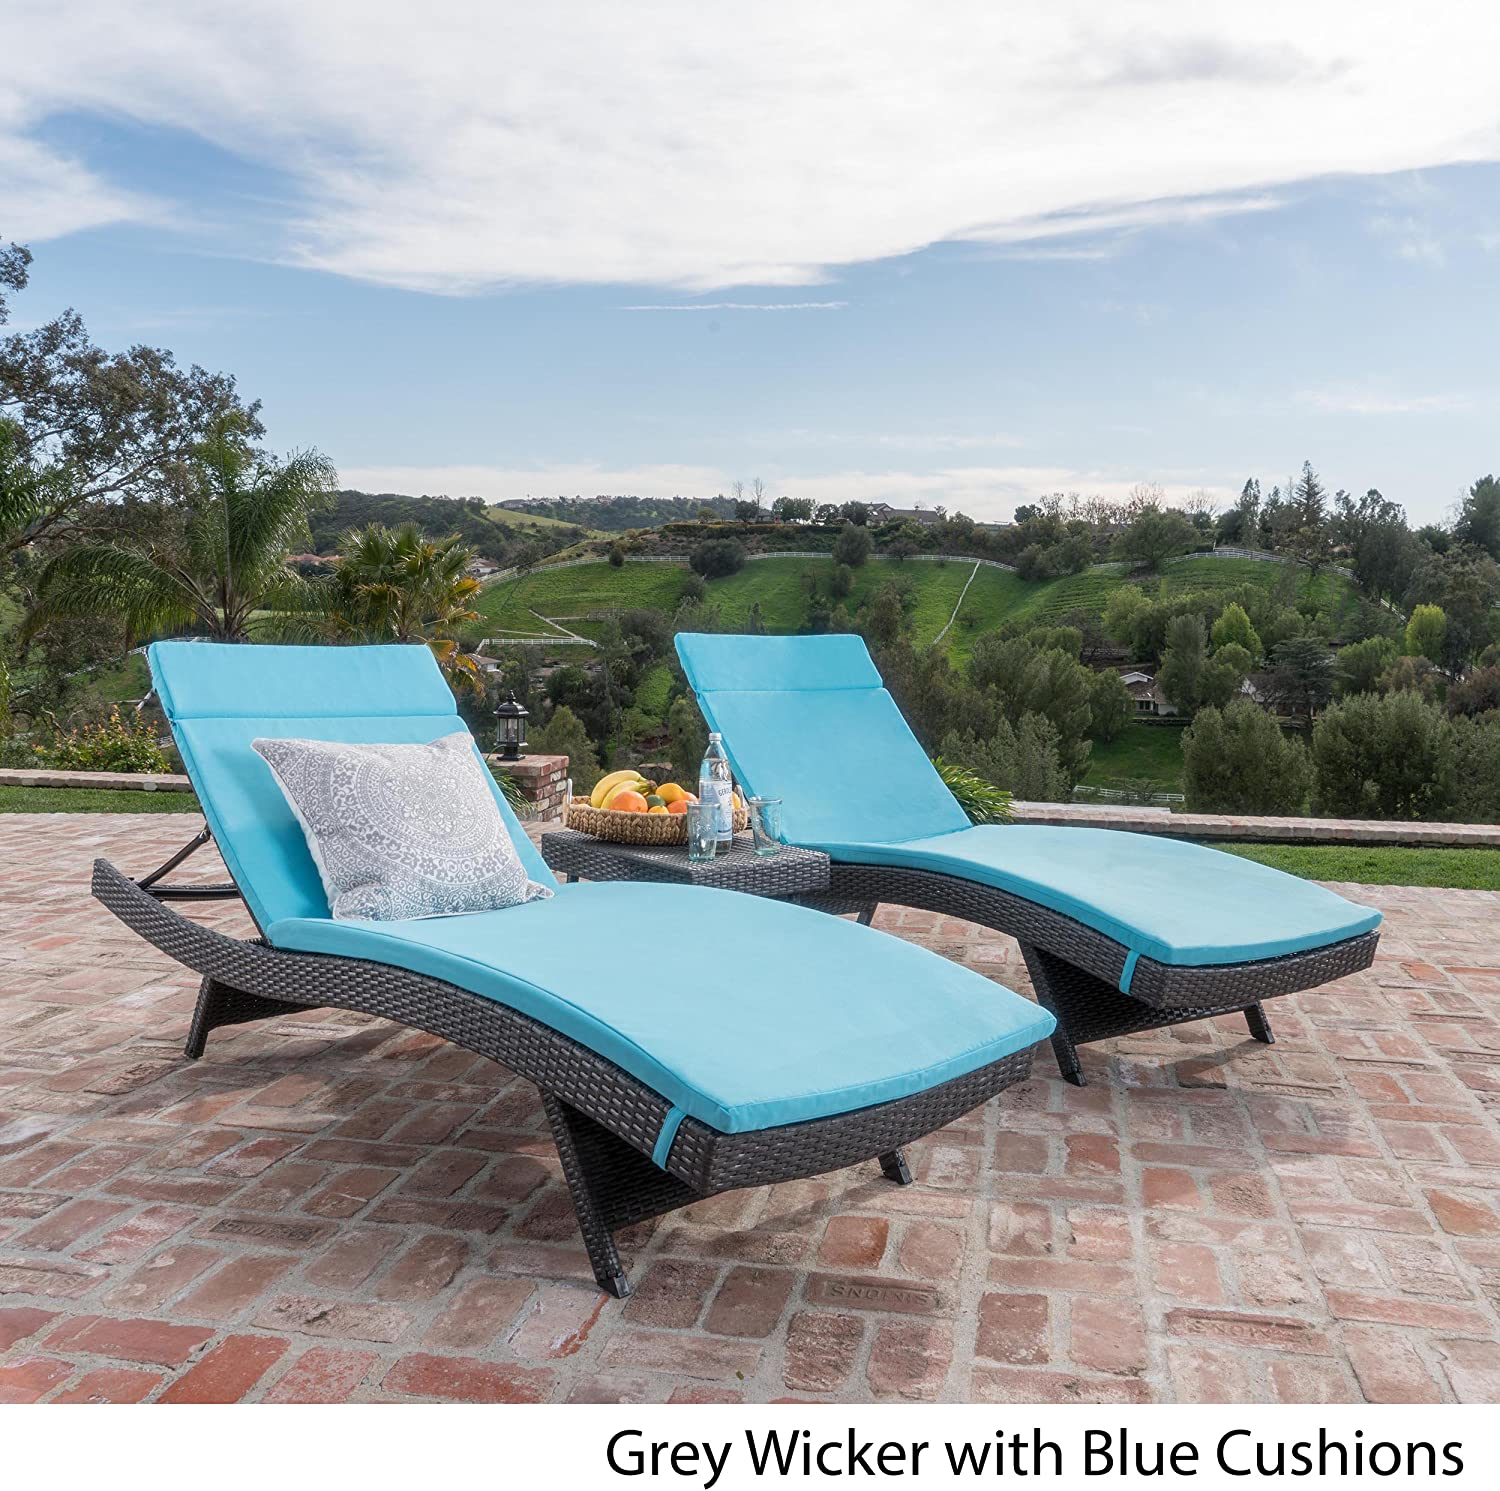 Savana 3Pc Outdoor Wicker Lounge with Water Resistant Cushions Coffee Table Grey BrightBlue